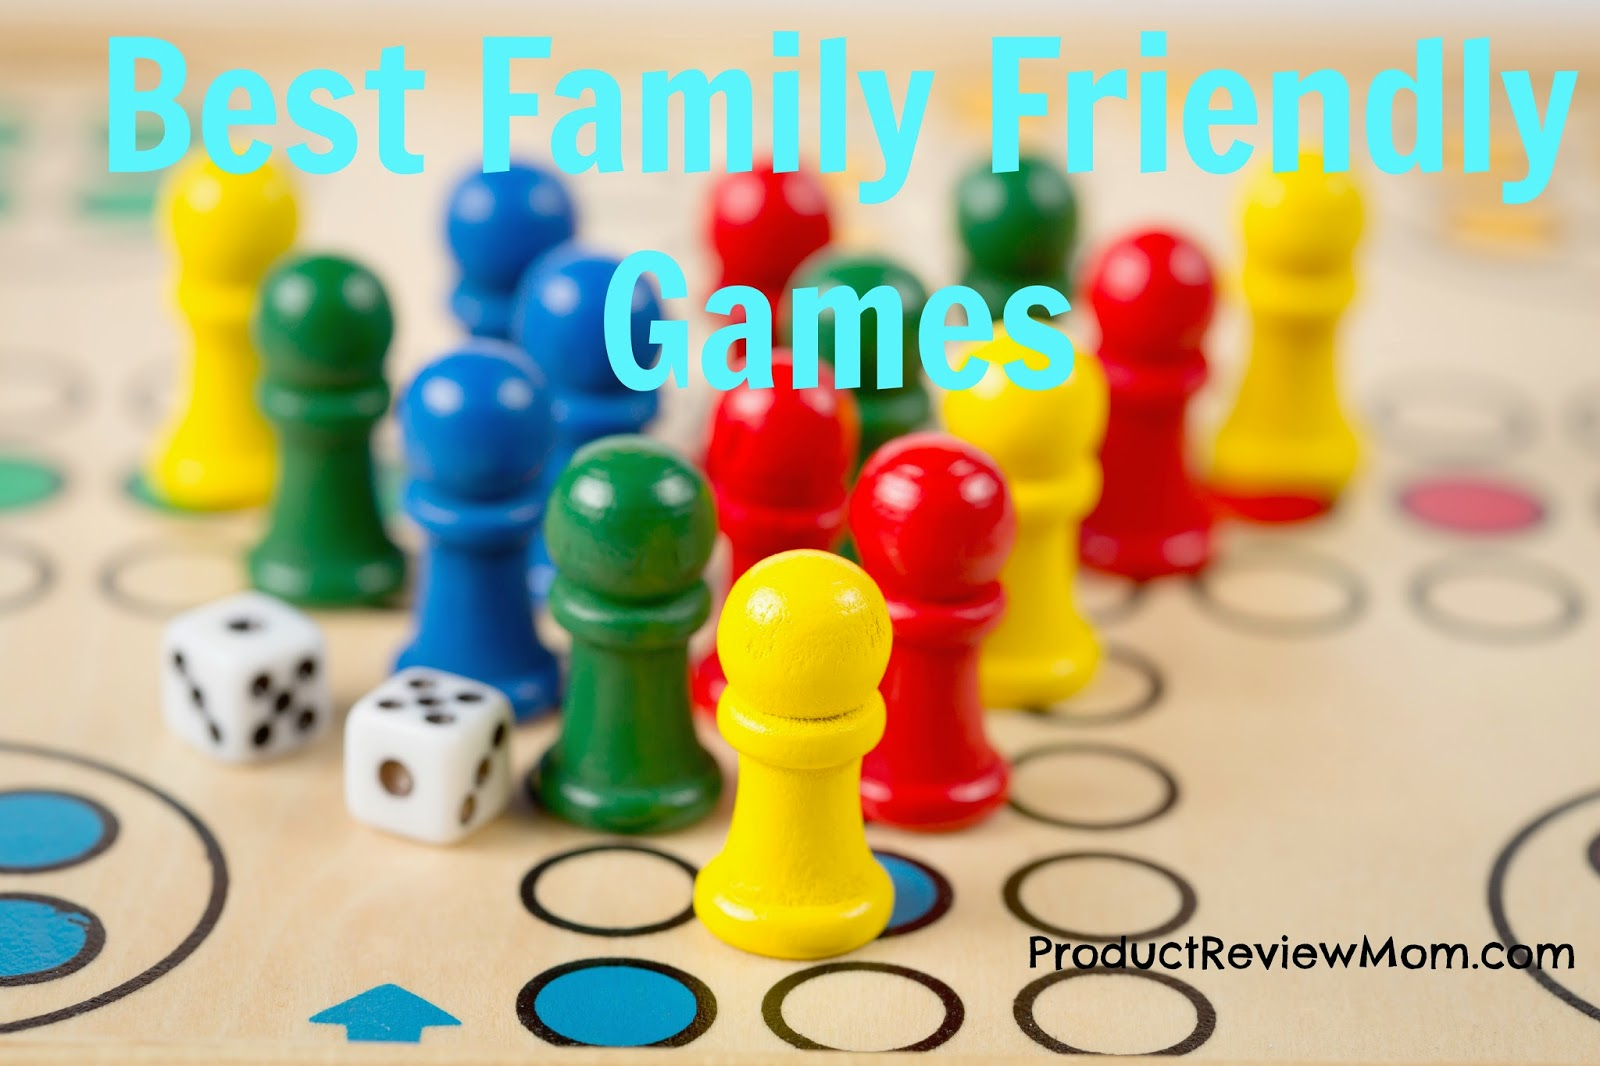 Best Family Friendly Games  via www.productreviewmom.com